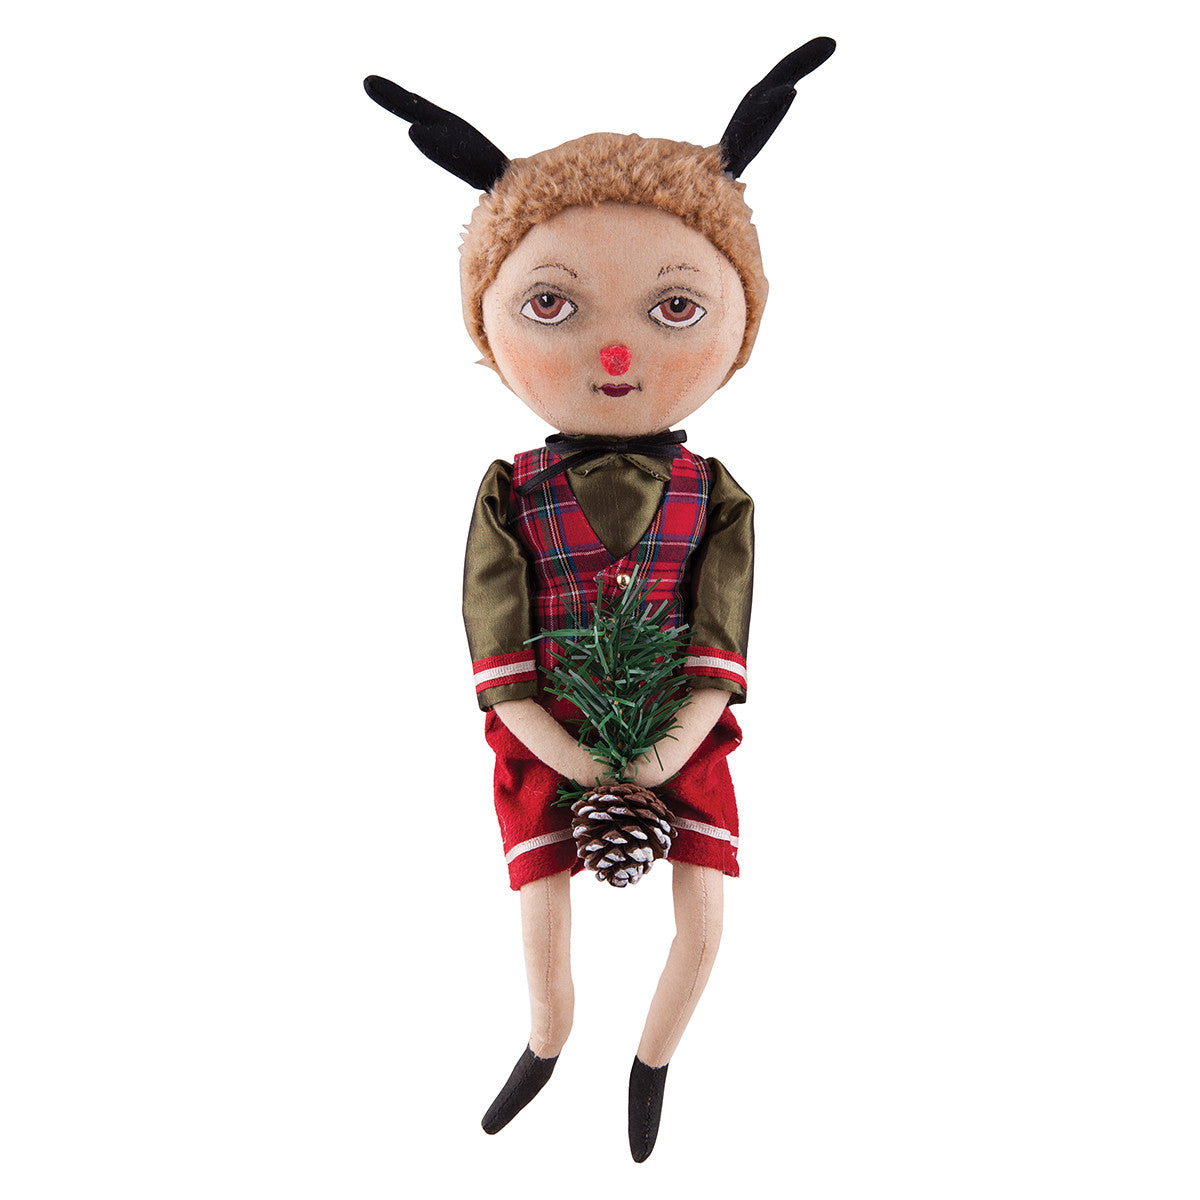 Dudley Deer Doll | Joe Spencer Reindeer